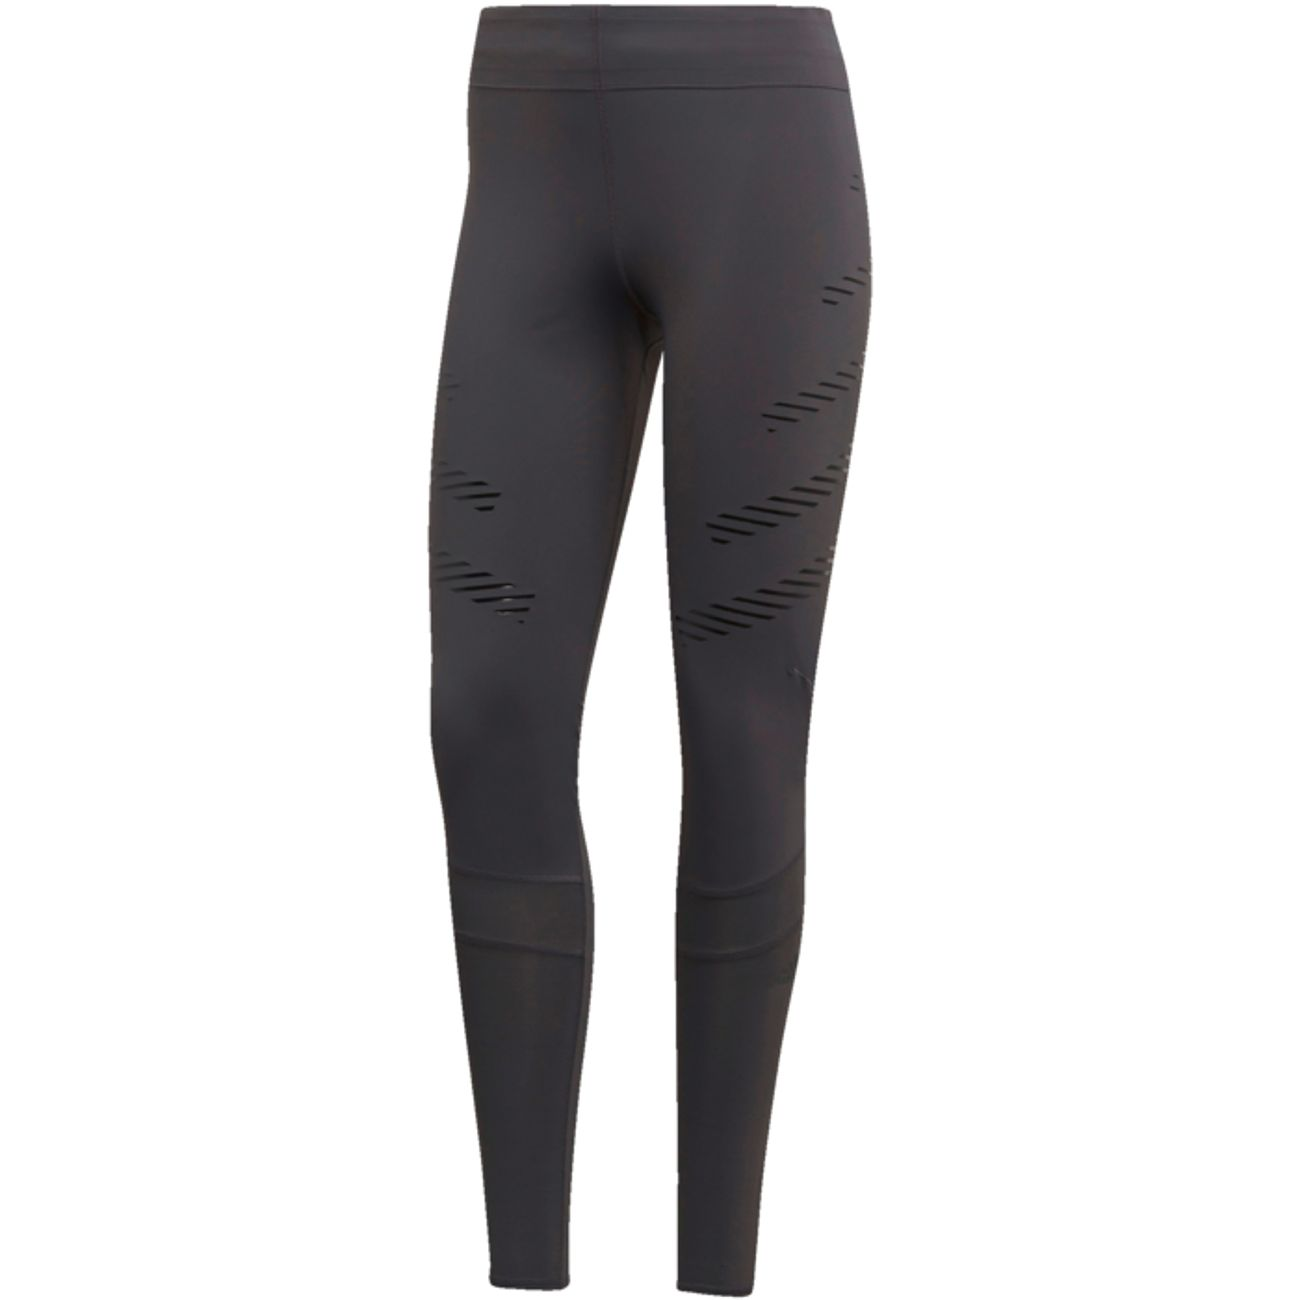 COLLANT running femme ADIDAS HOW WE DO TIGHT